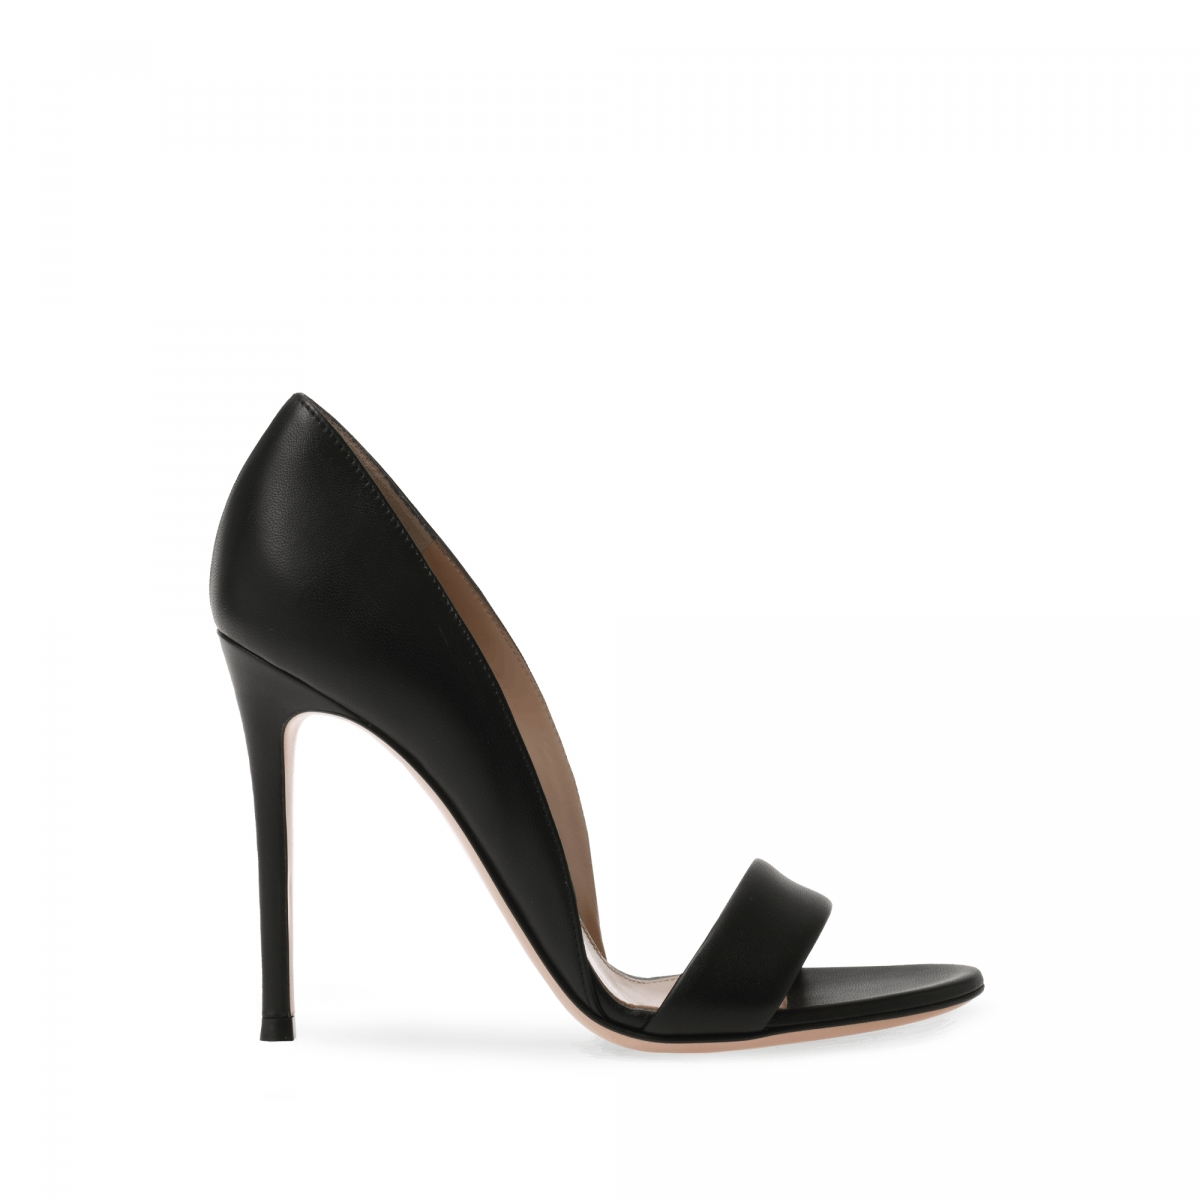 G61686.15RIC.NAPNERO by BAISER, available on gianvitorossi.com for EUR650 Hailey Baldwin Shoes Exact Product